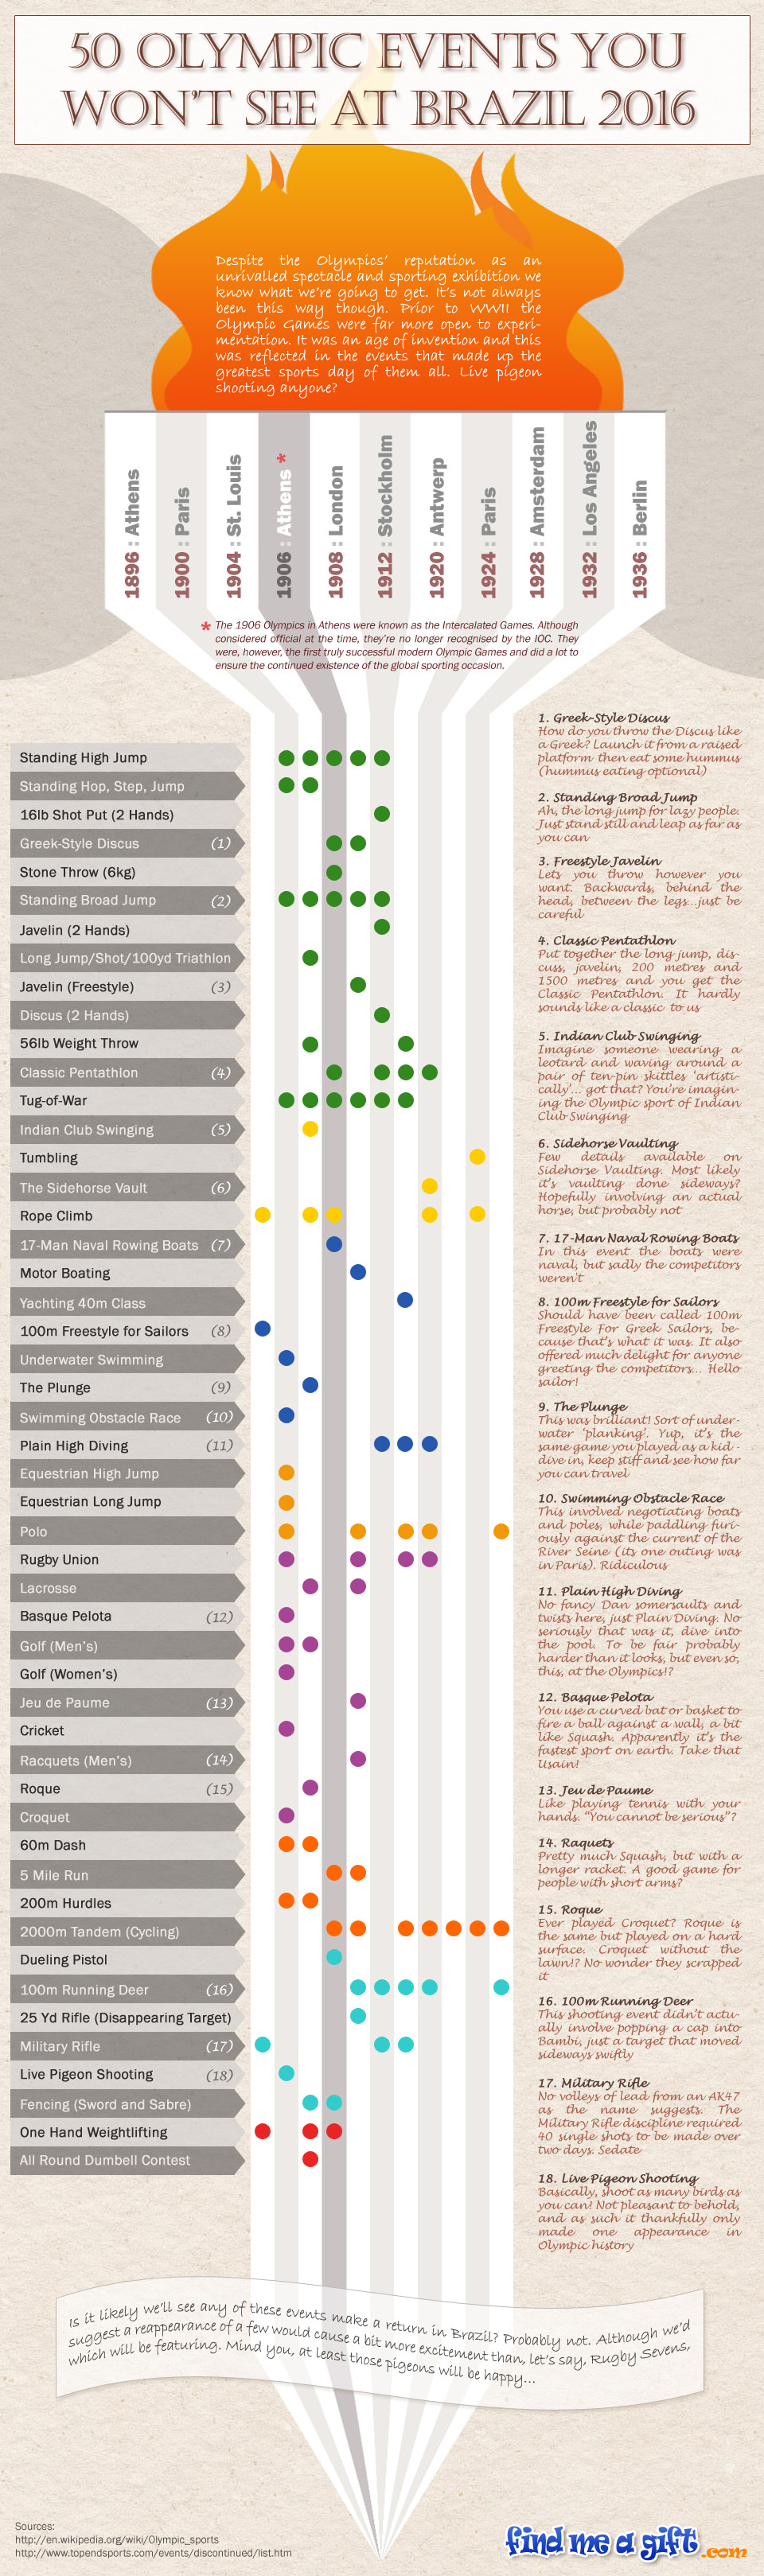 Infographic showing 50 Olympic Events You Won't See In 2016